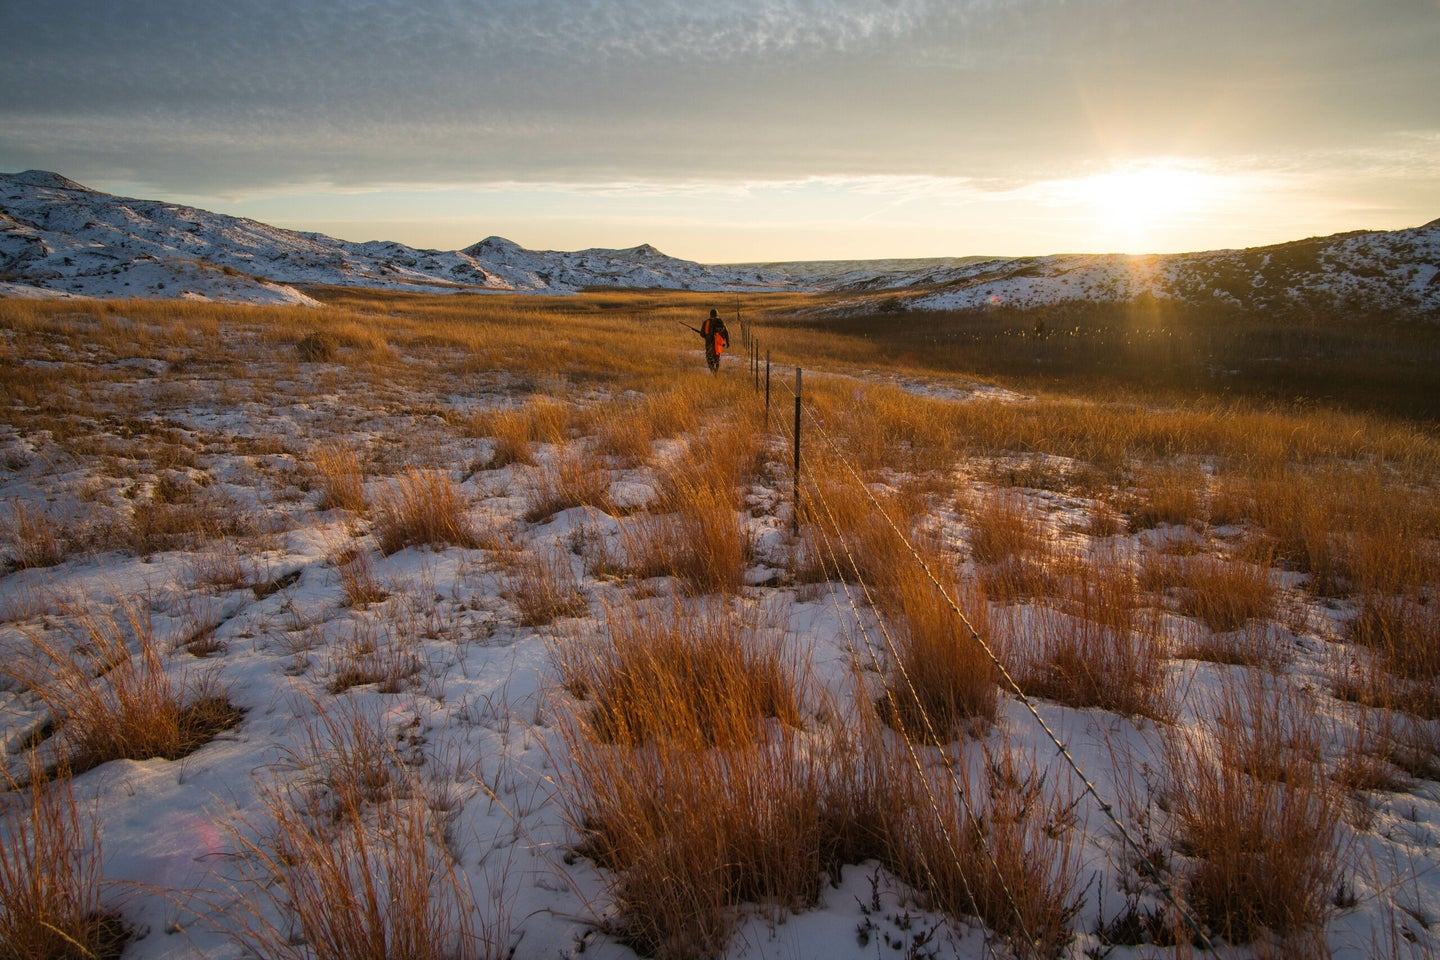 Hunters Can't Access 6.35 Million Acres of Western State Lands